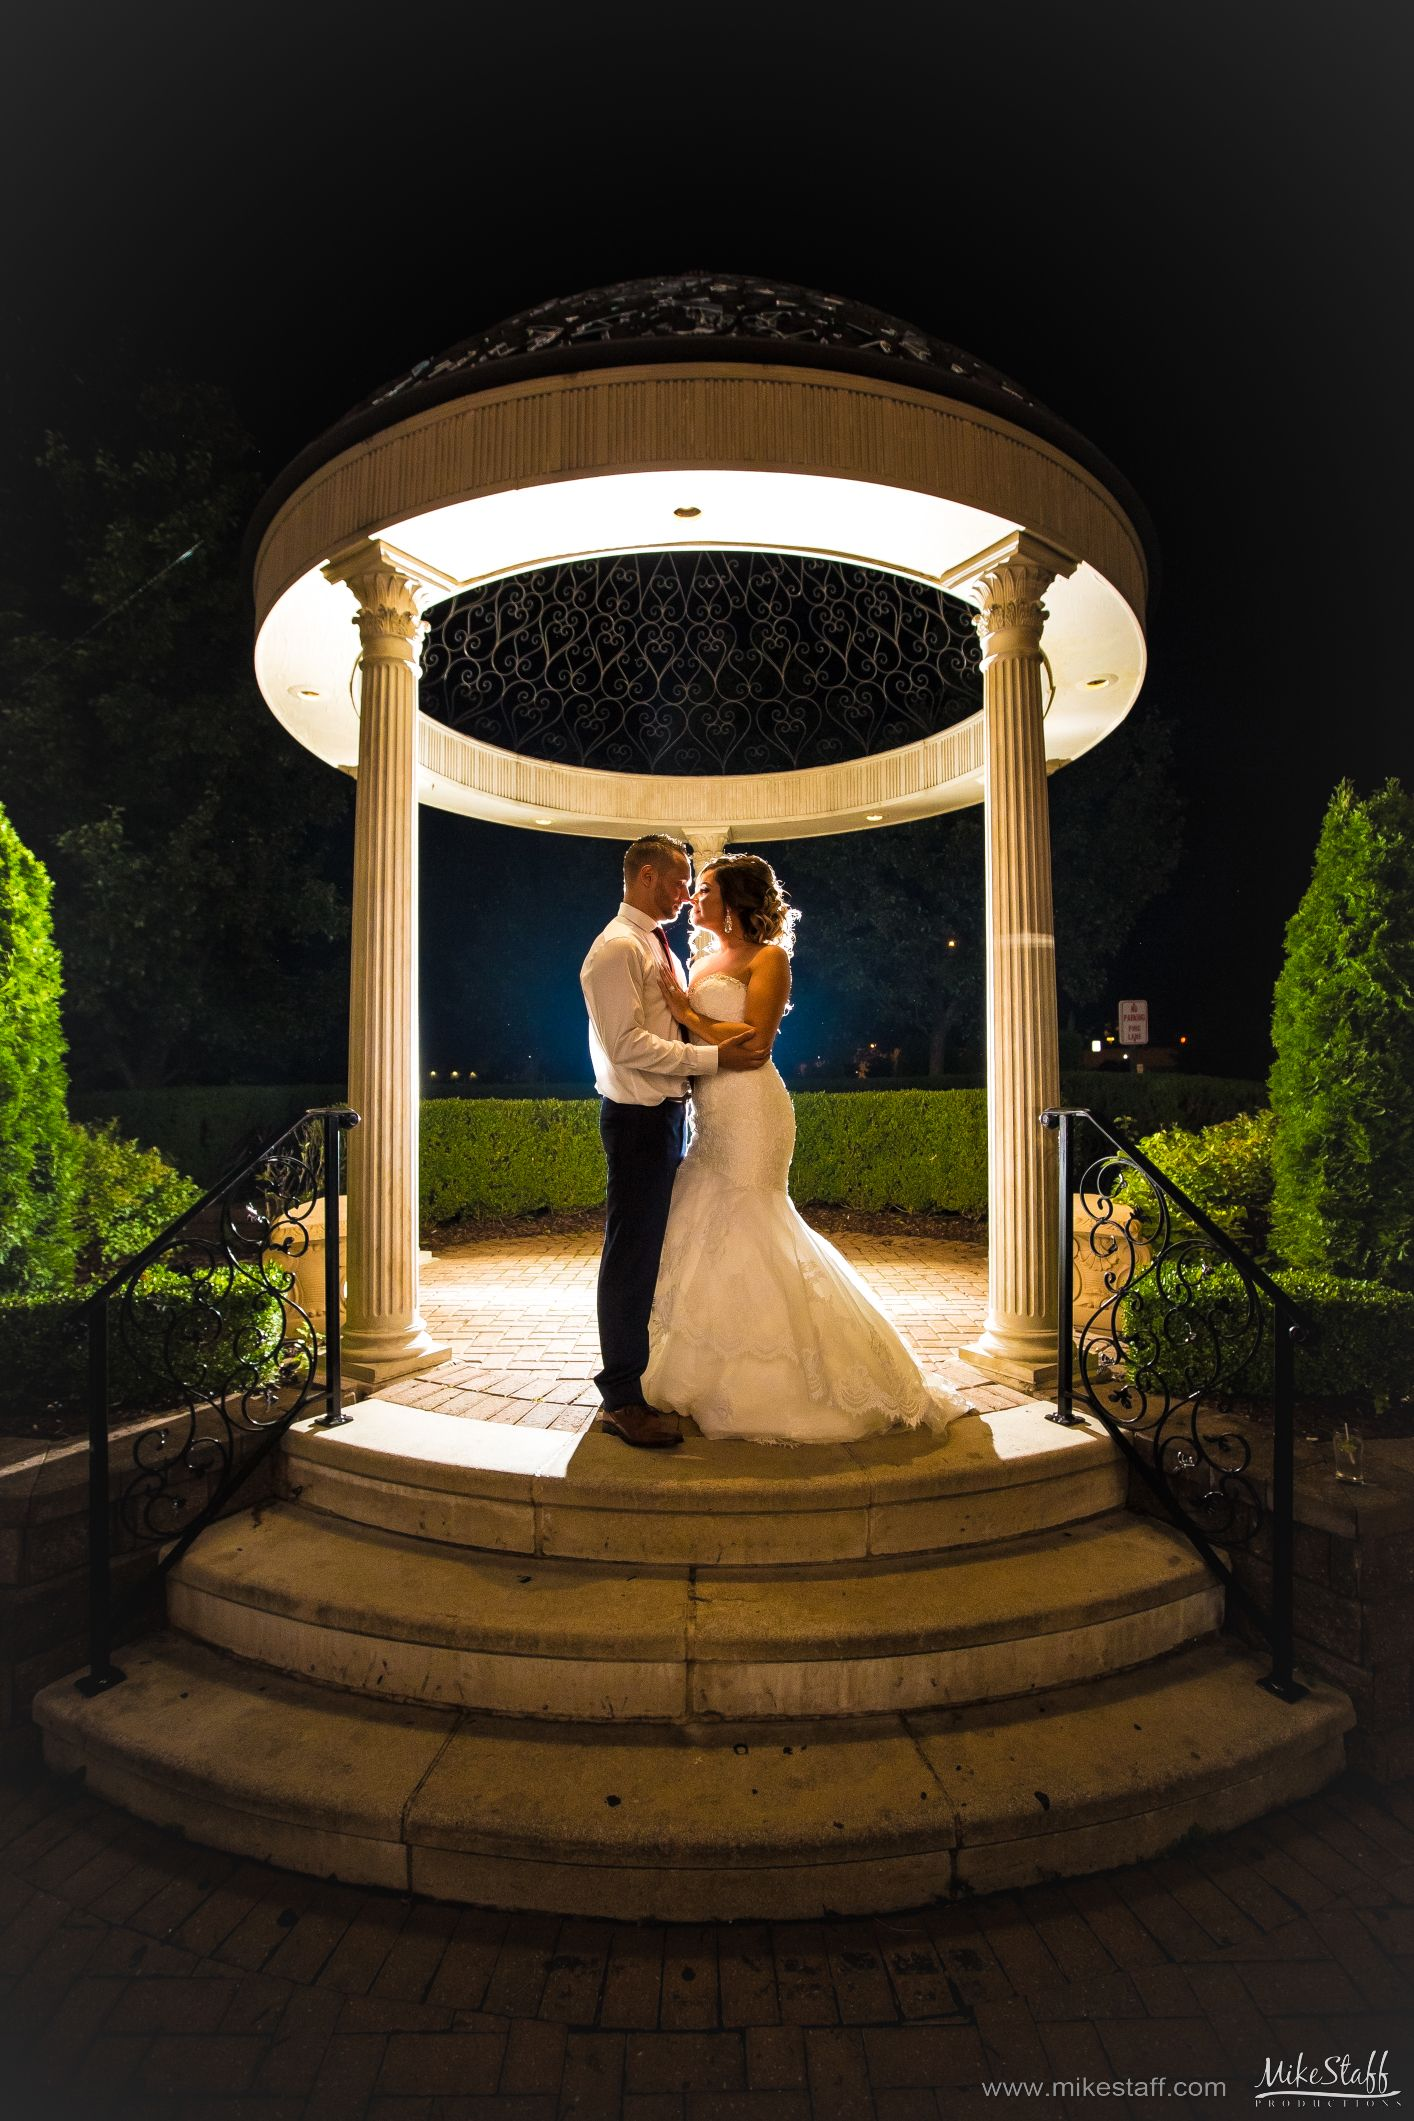 Have You Read How To Hire A Great Dj Night Wedding Photography Wedding Photographers Romantic Wedding Photos